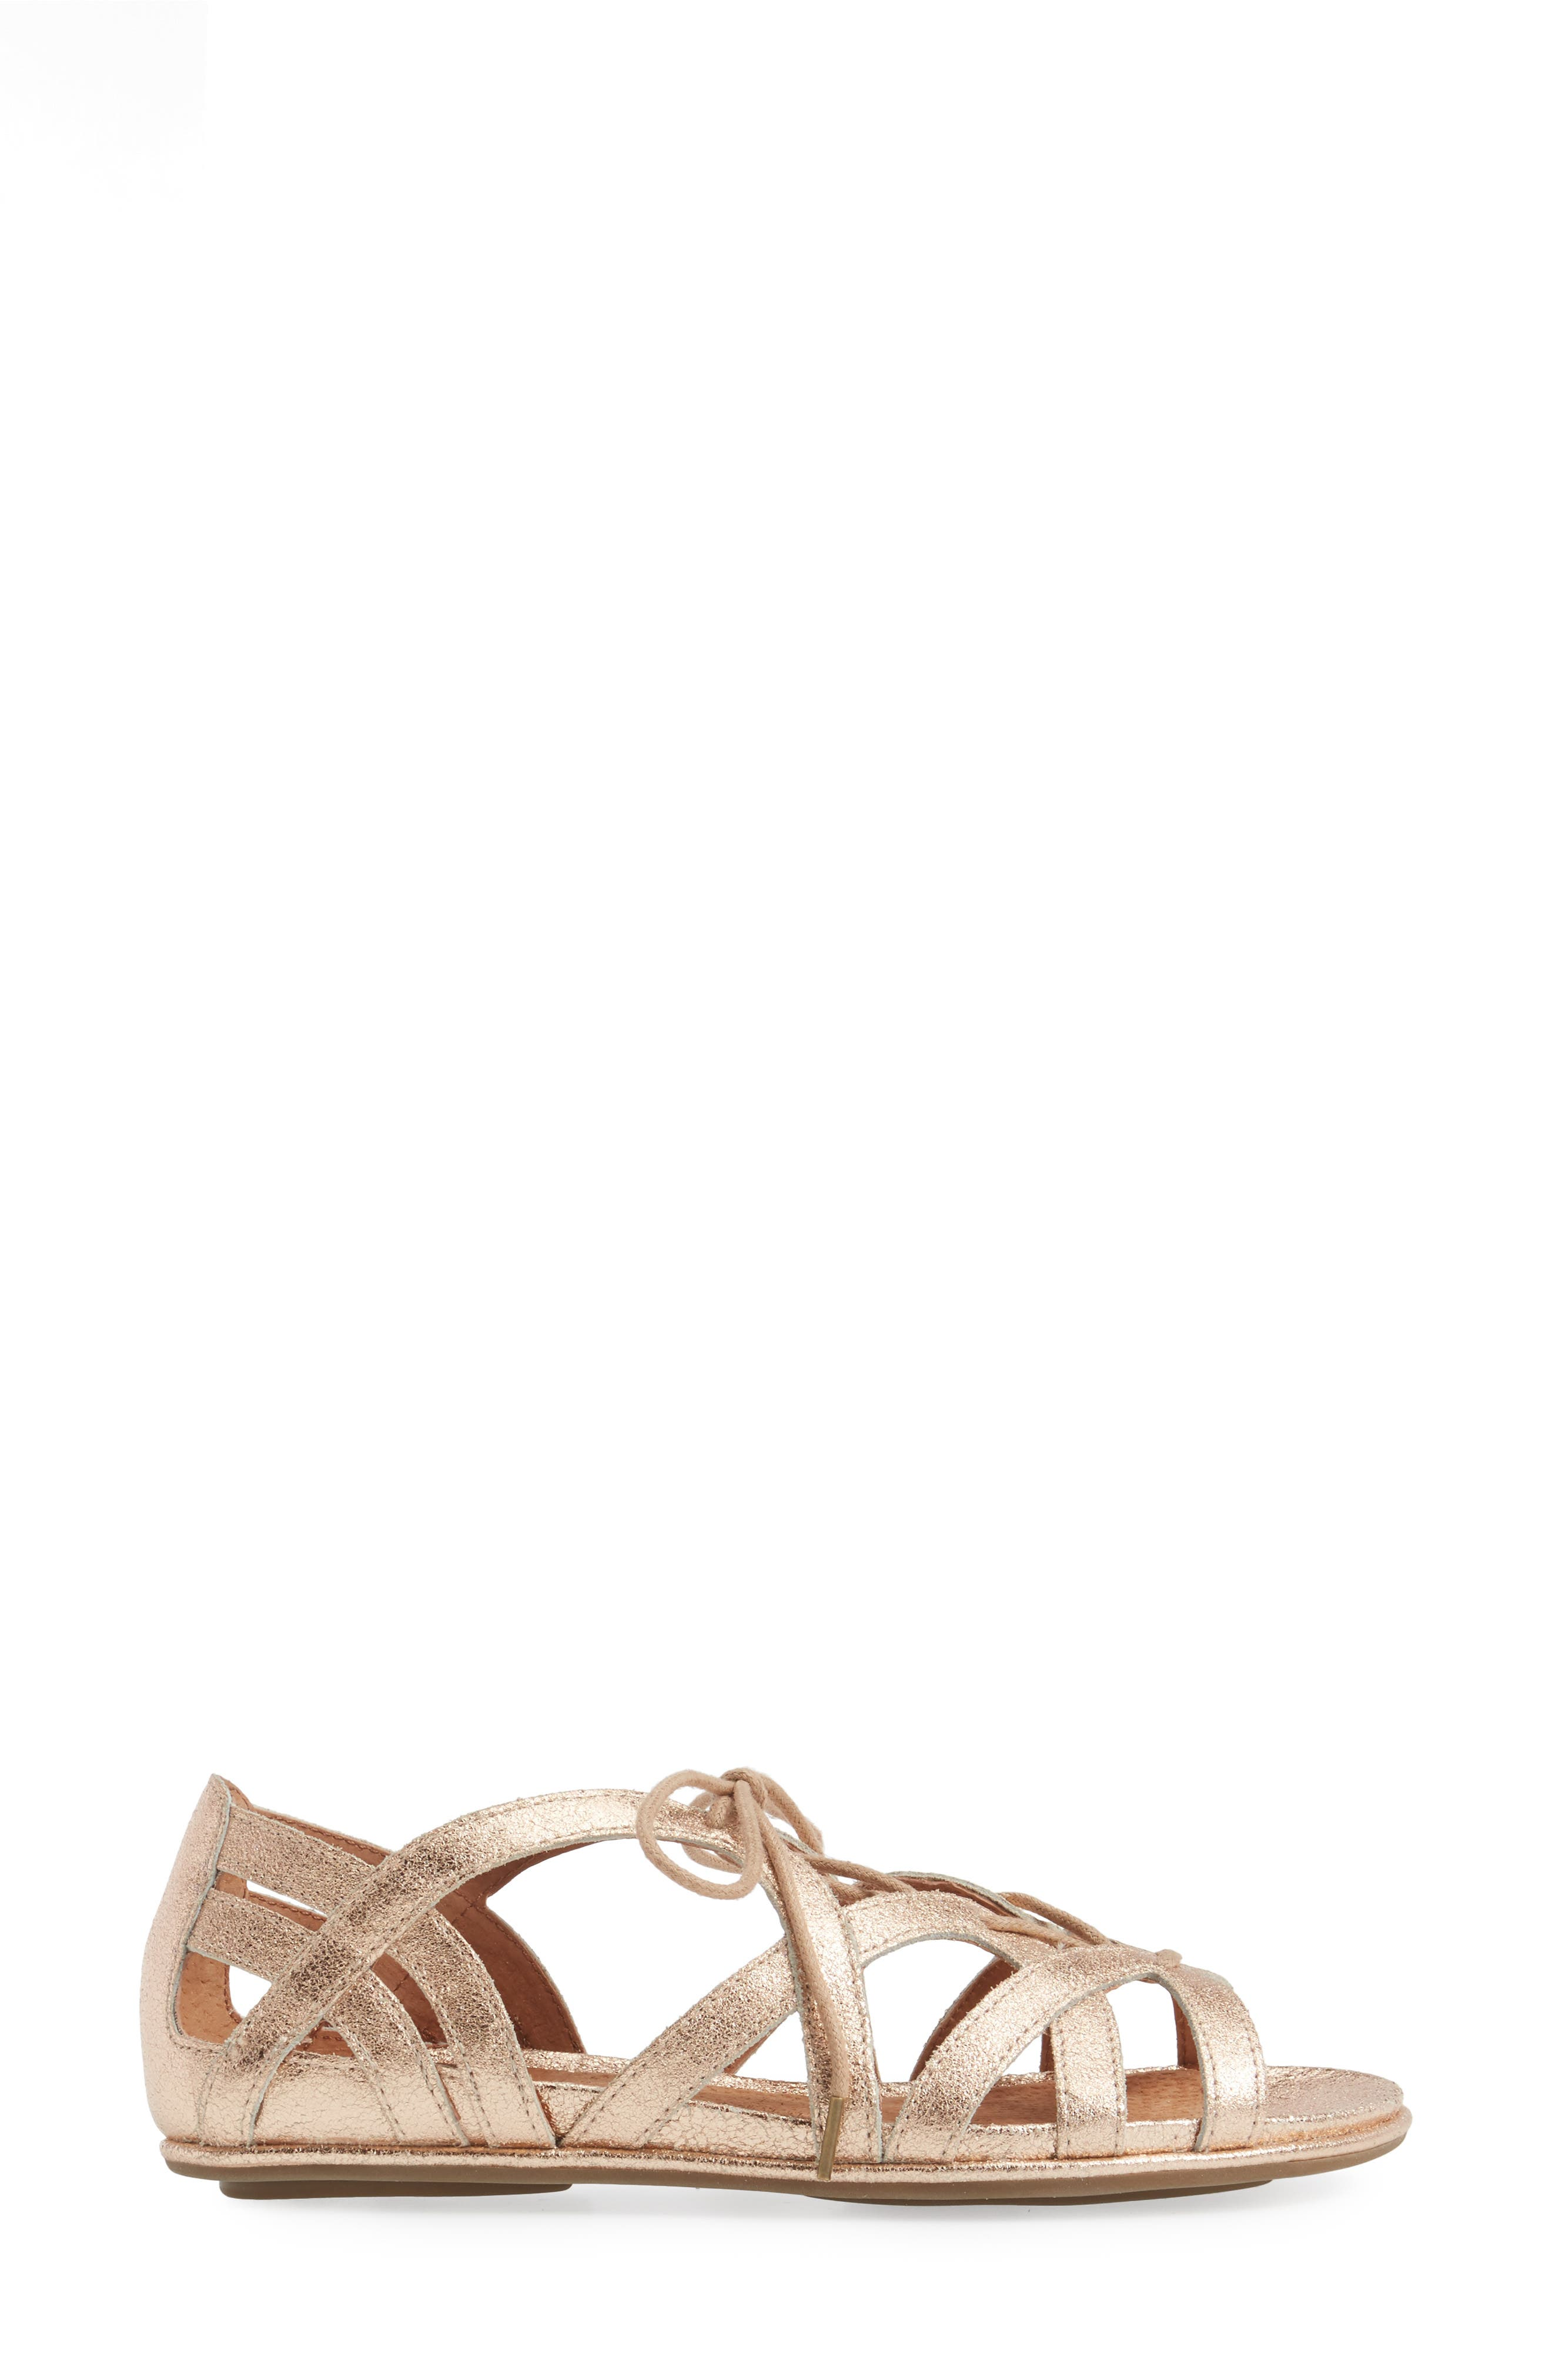 Orly Lace-Up Sandal,                             Alternate thumbnail 3, color,                             ROSE GOLD LEATHER